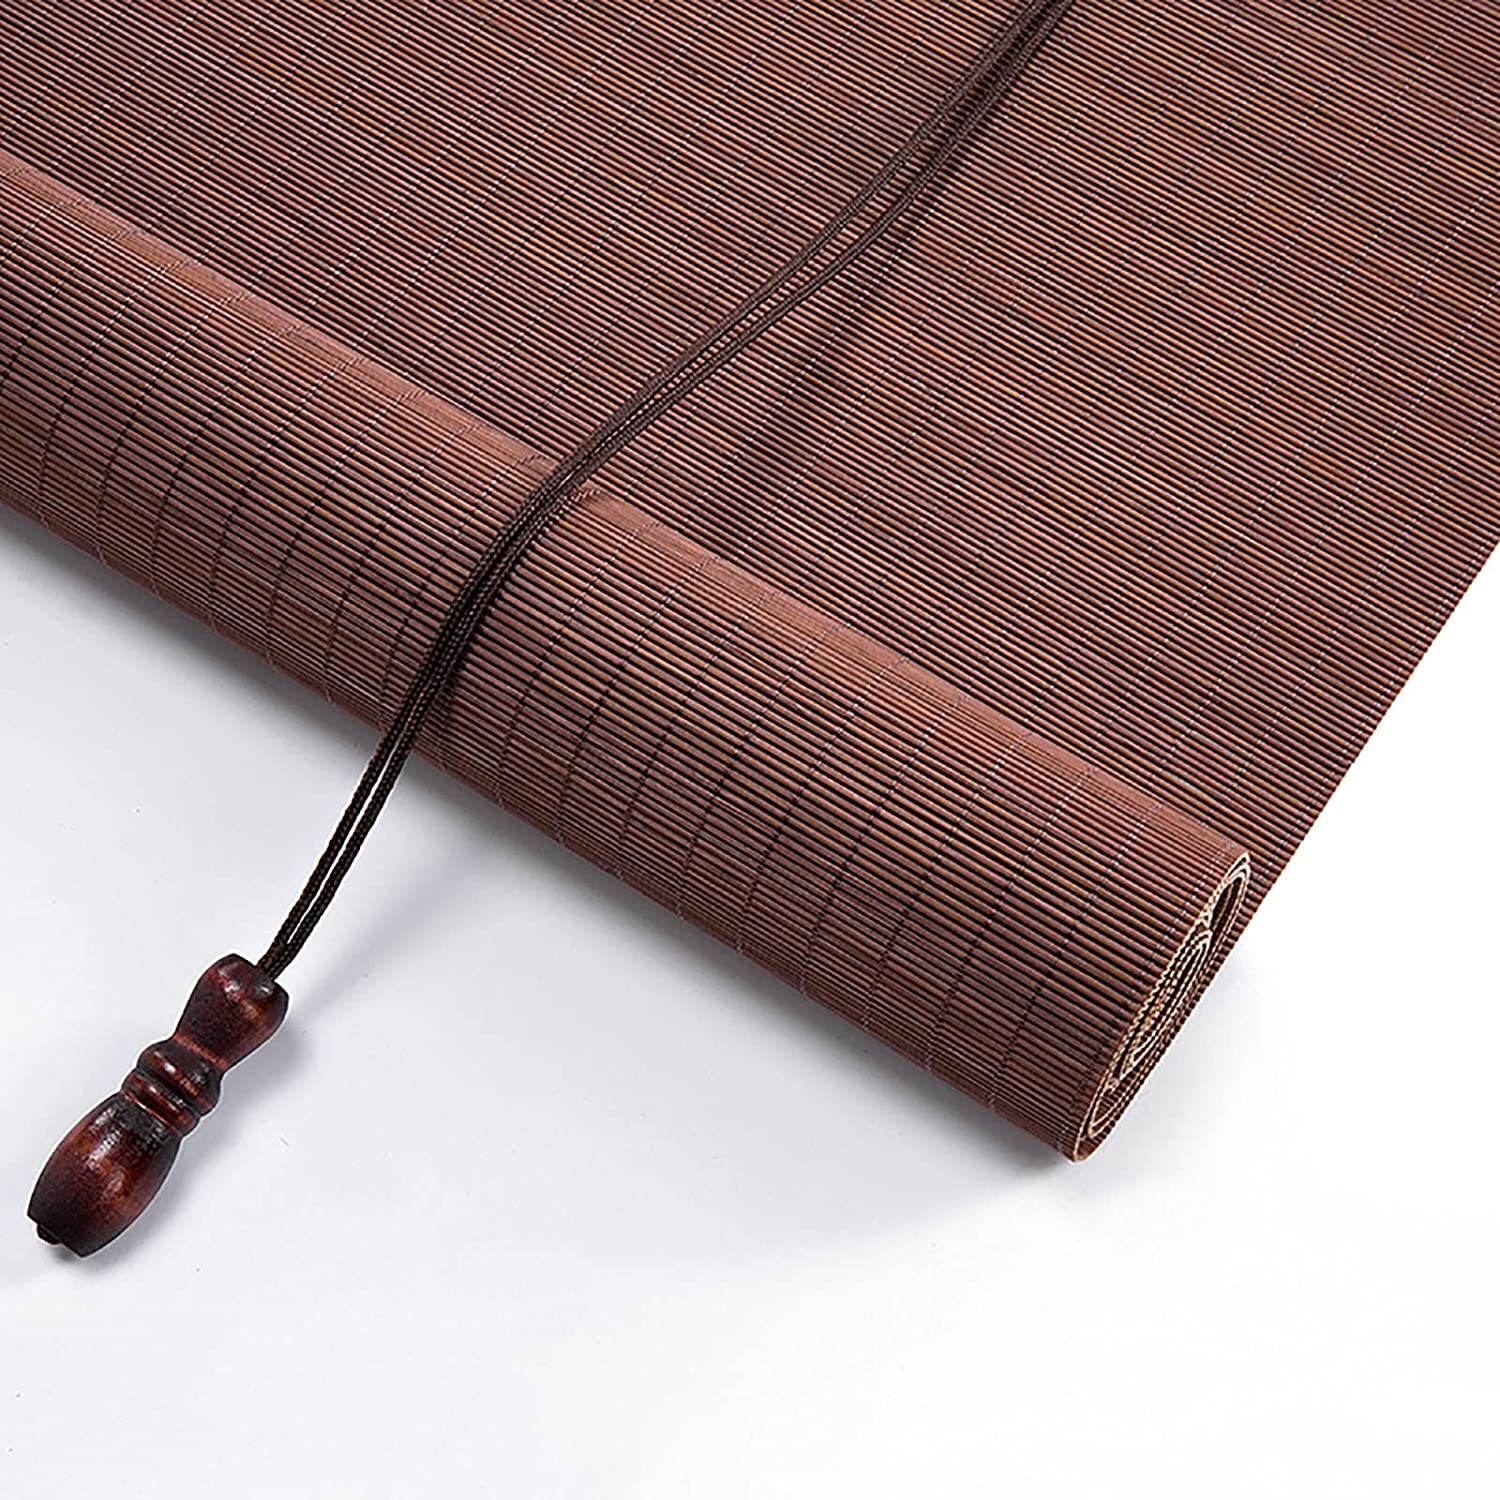 FMNV Bamboo New arrival Curtain Wooden Roller Retro Blinds B Blind Ranking TOP20